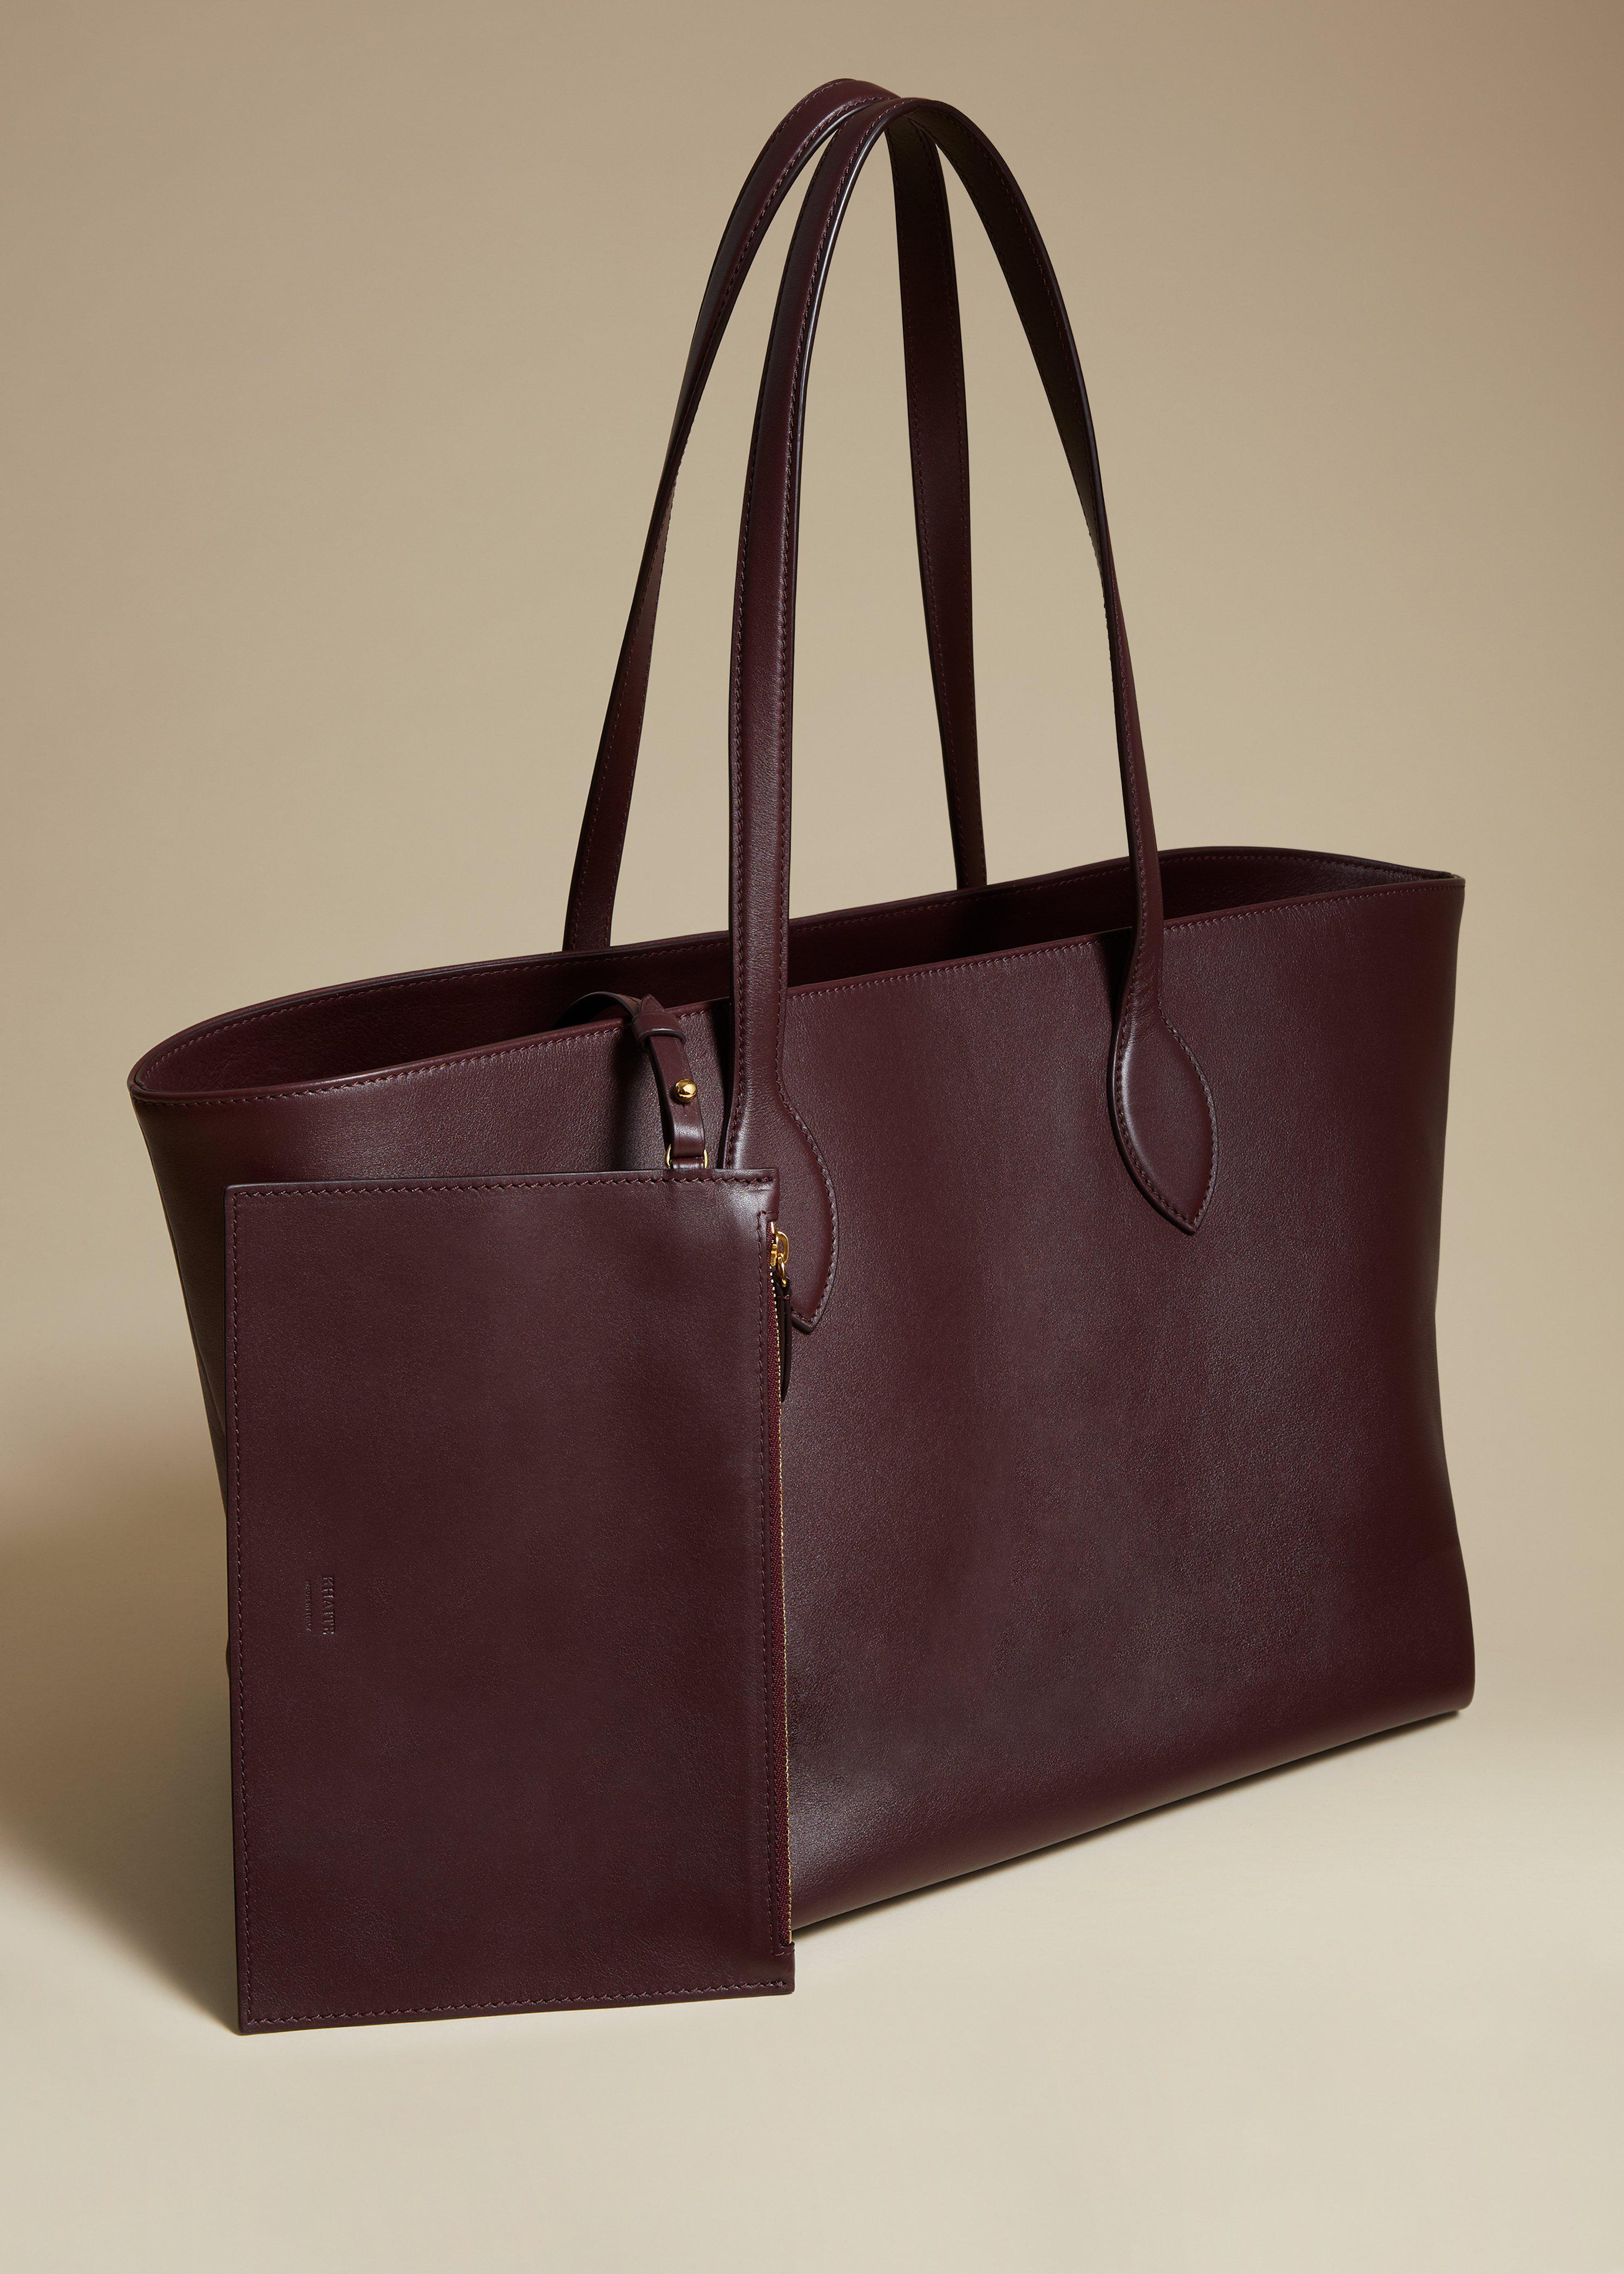 The Florence Tote in Deep Red Leather 1